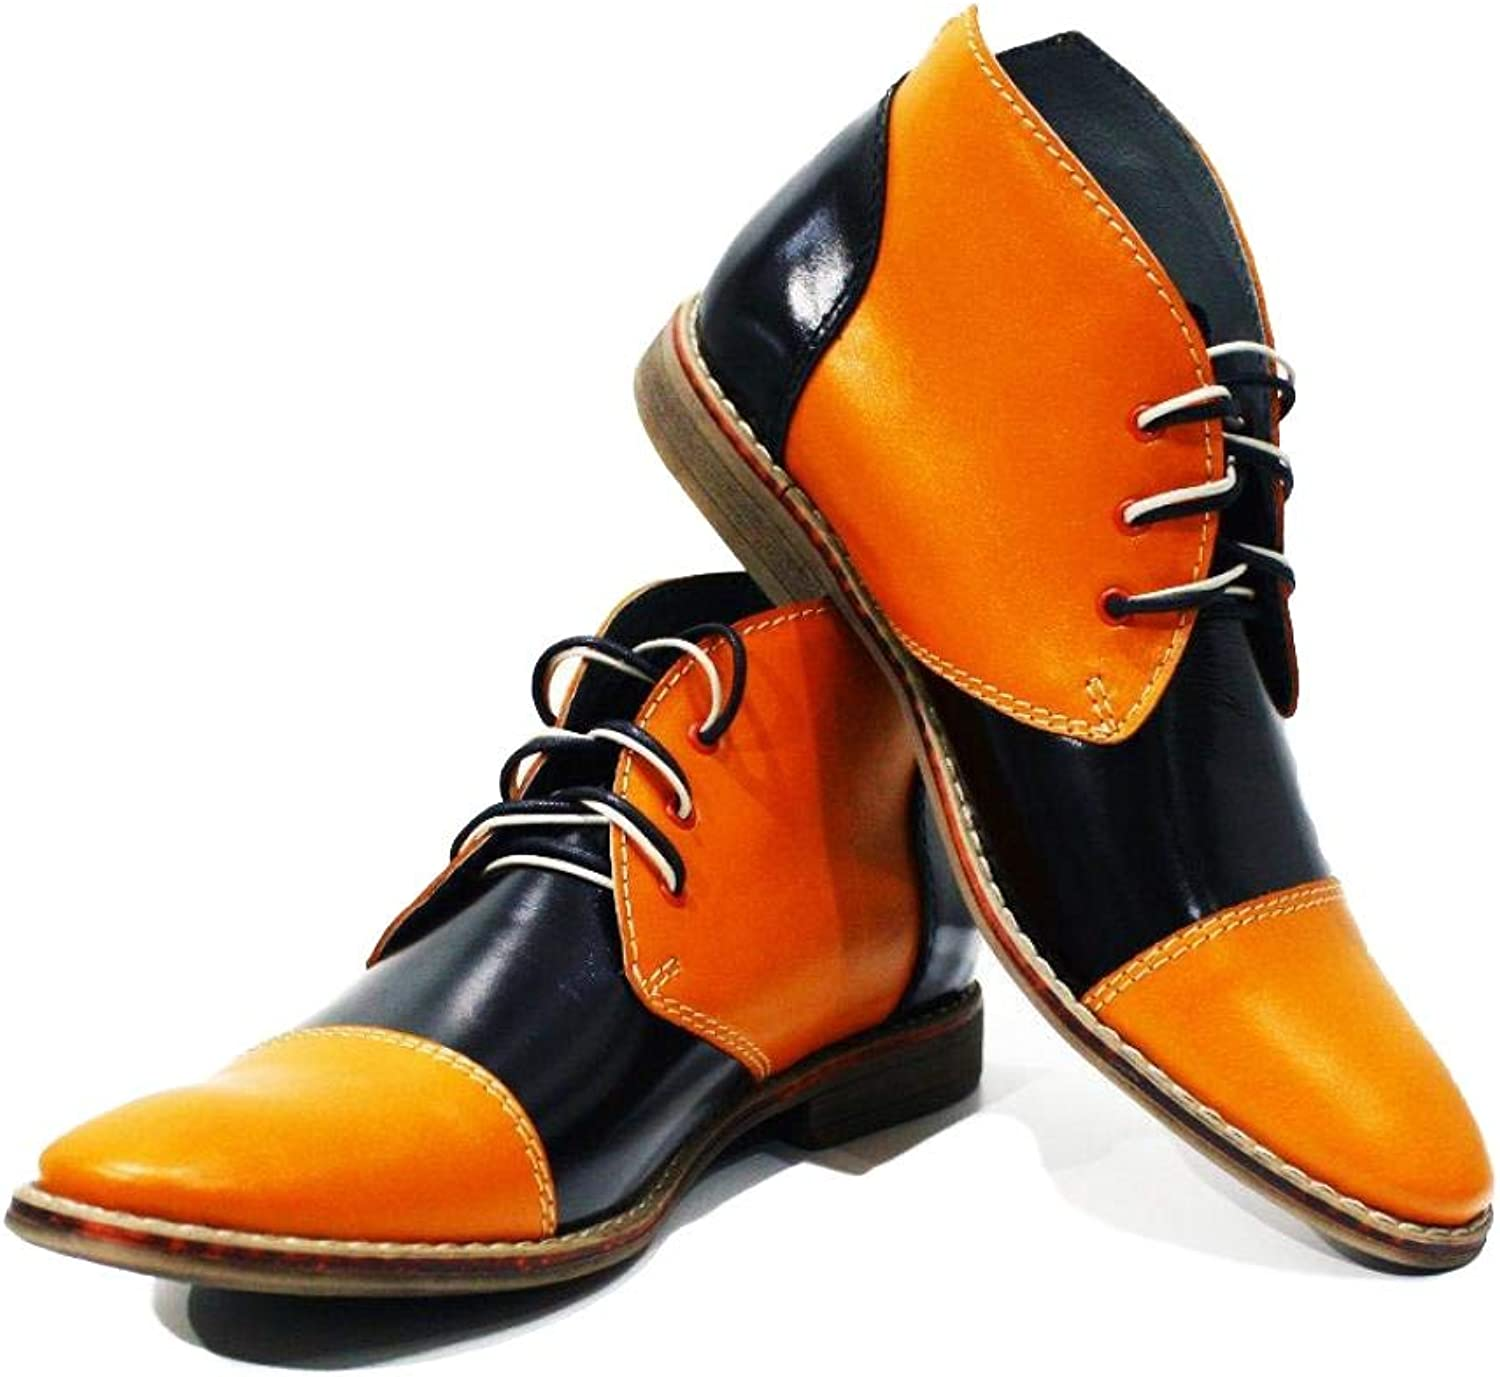 Peppeshoes Modello Alatri - Handmade Italian Leather Mens color orange Ankle Chukka Boots - Cowhide Smooth Leather - Lace-Up